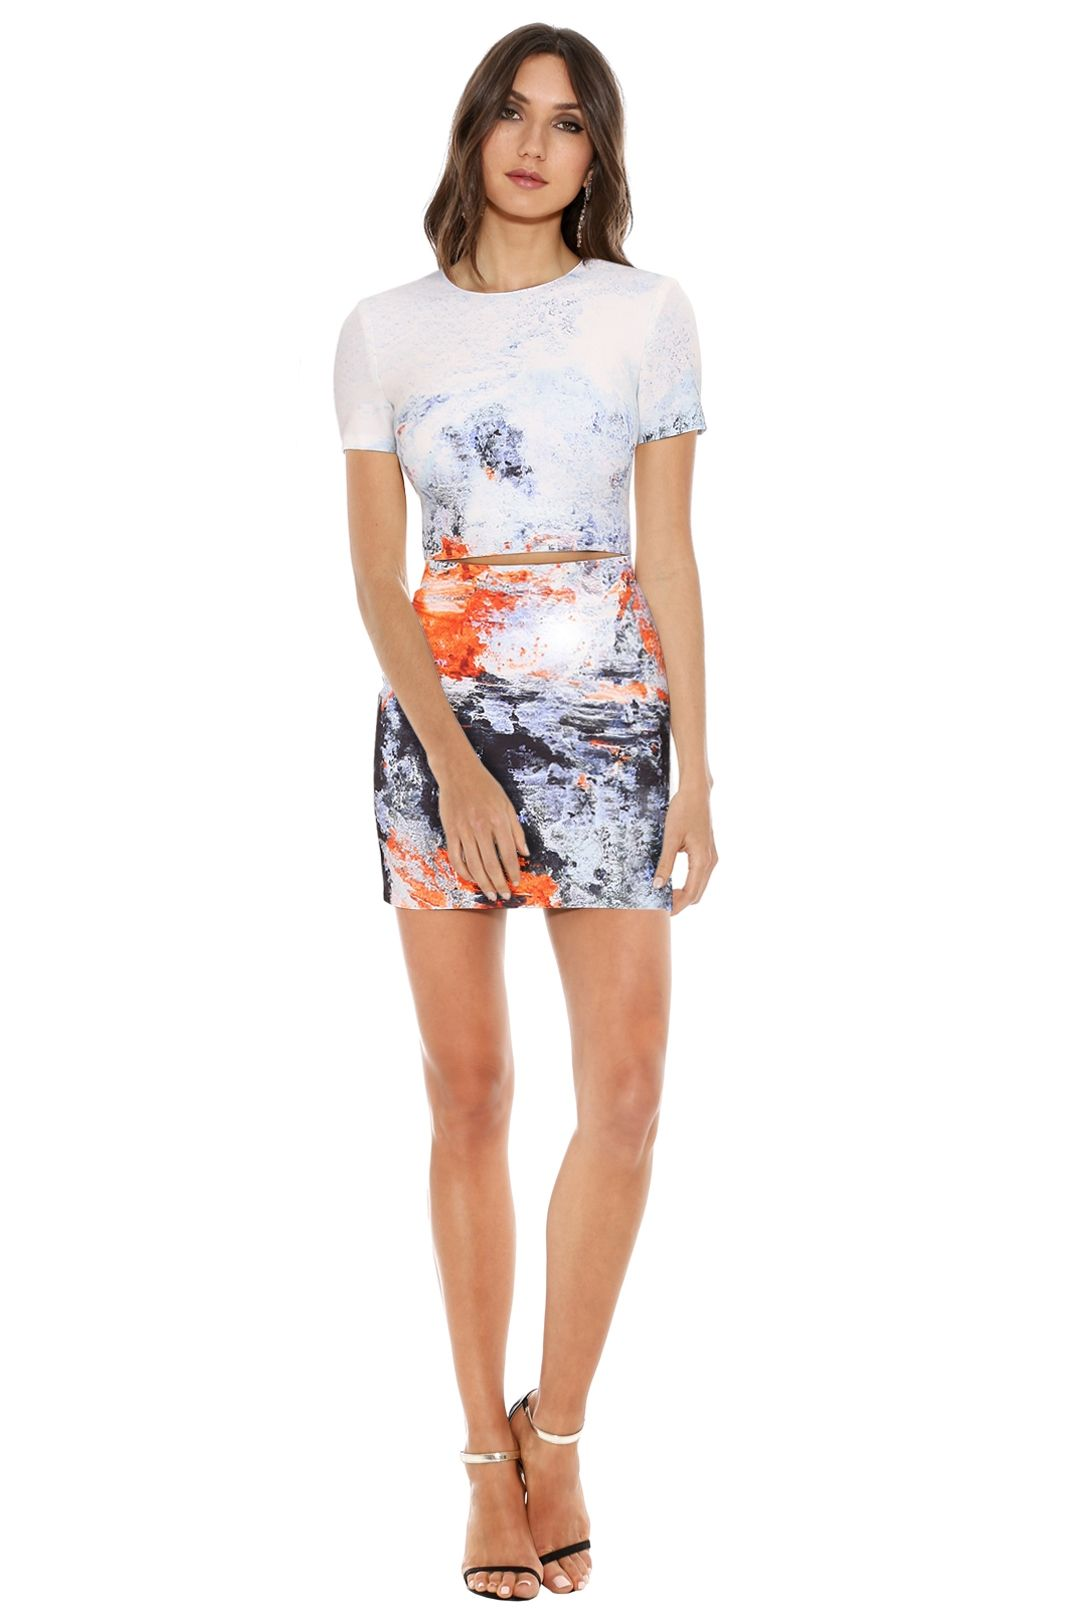 Bec & Bridge - Fire & Ice Tee Dress - White Print - Front